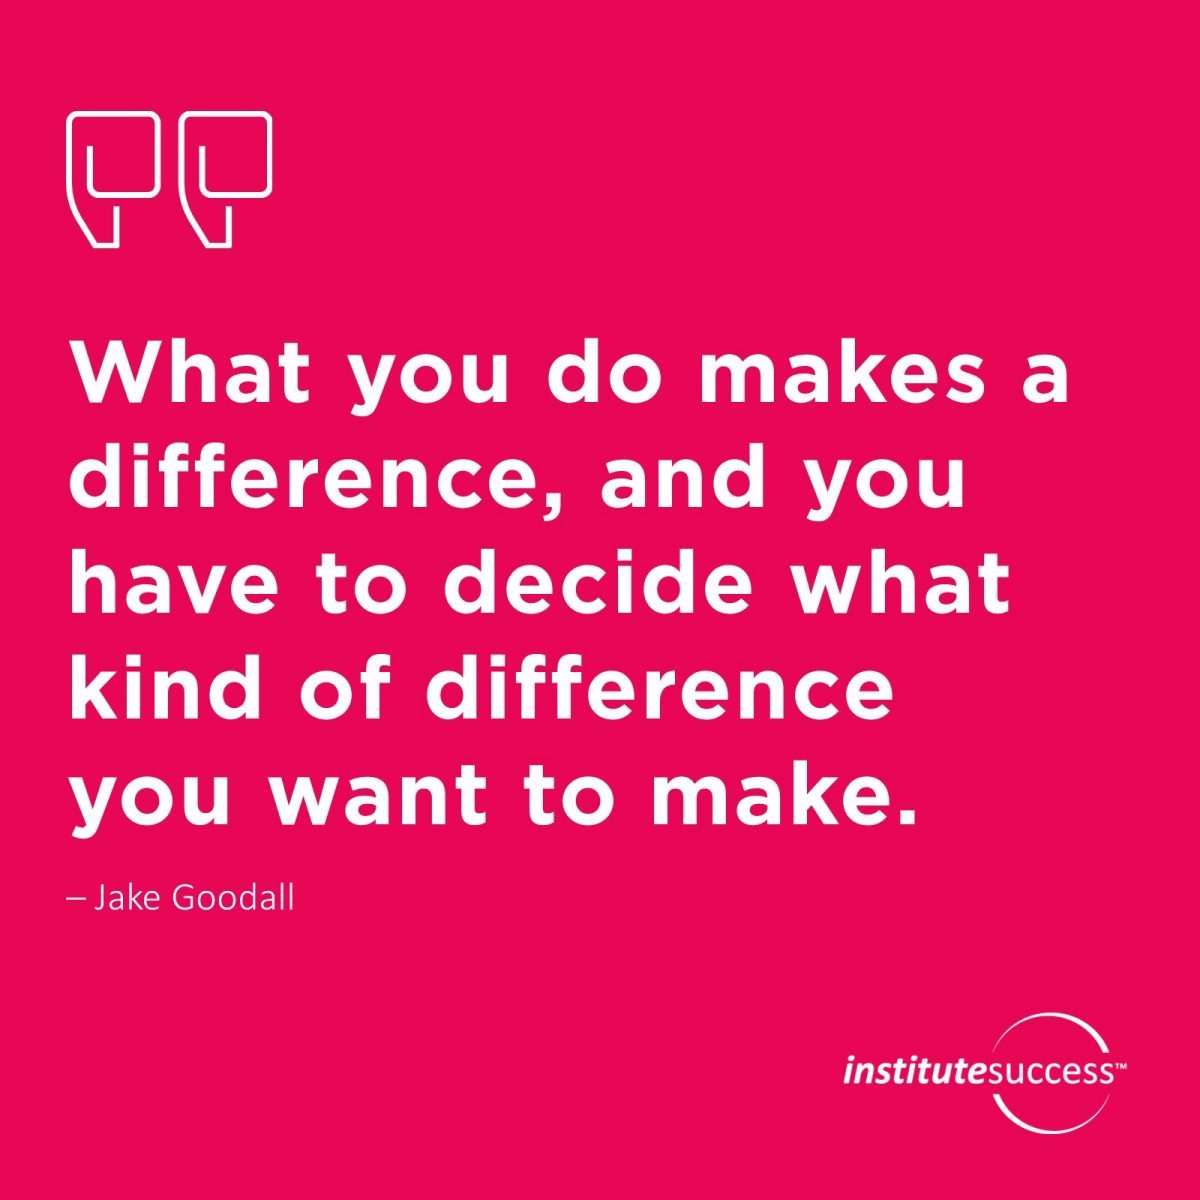 What you do makes a difference, and you have to decide what kind of difference you want to make. –  Jake Goodall